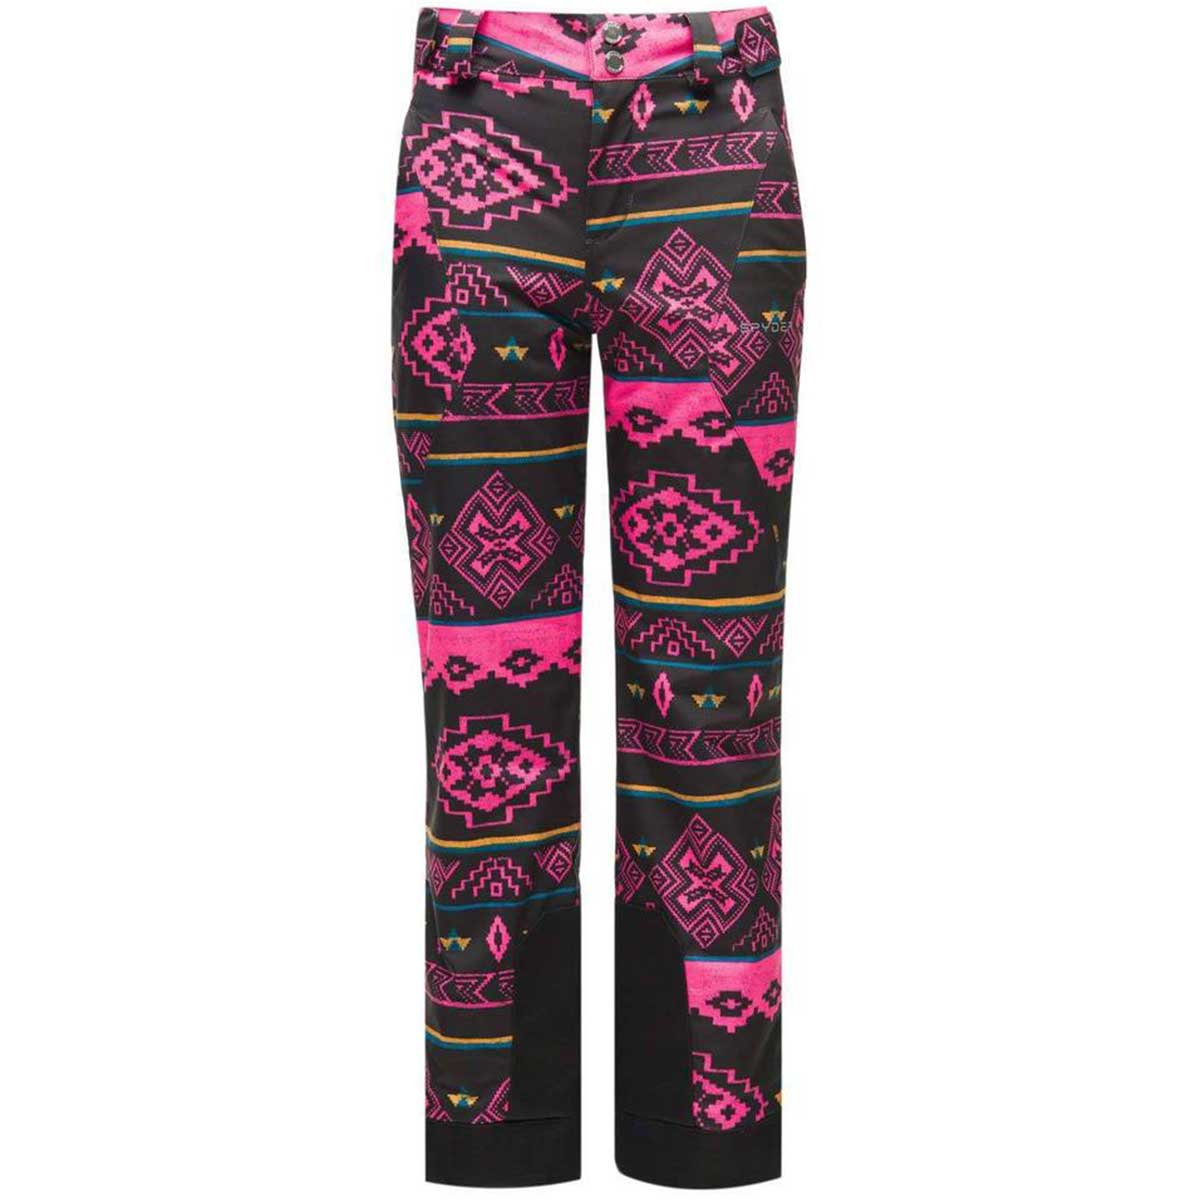 Spyder girls' Olympia Pant in Sweater Weather Print front view